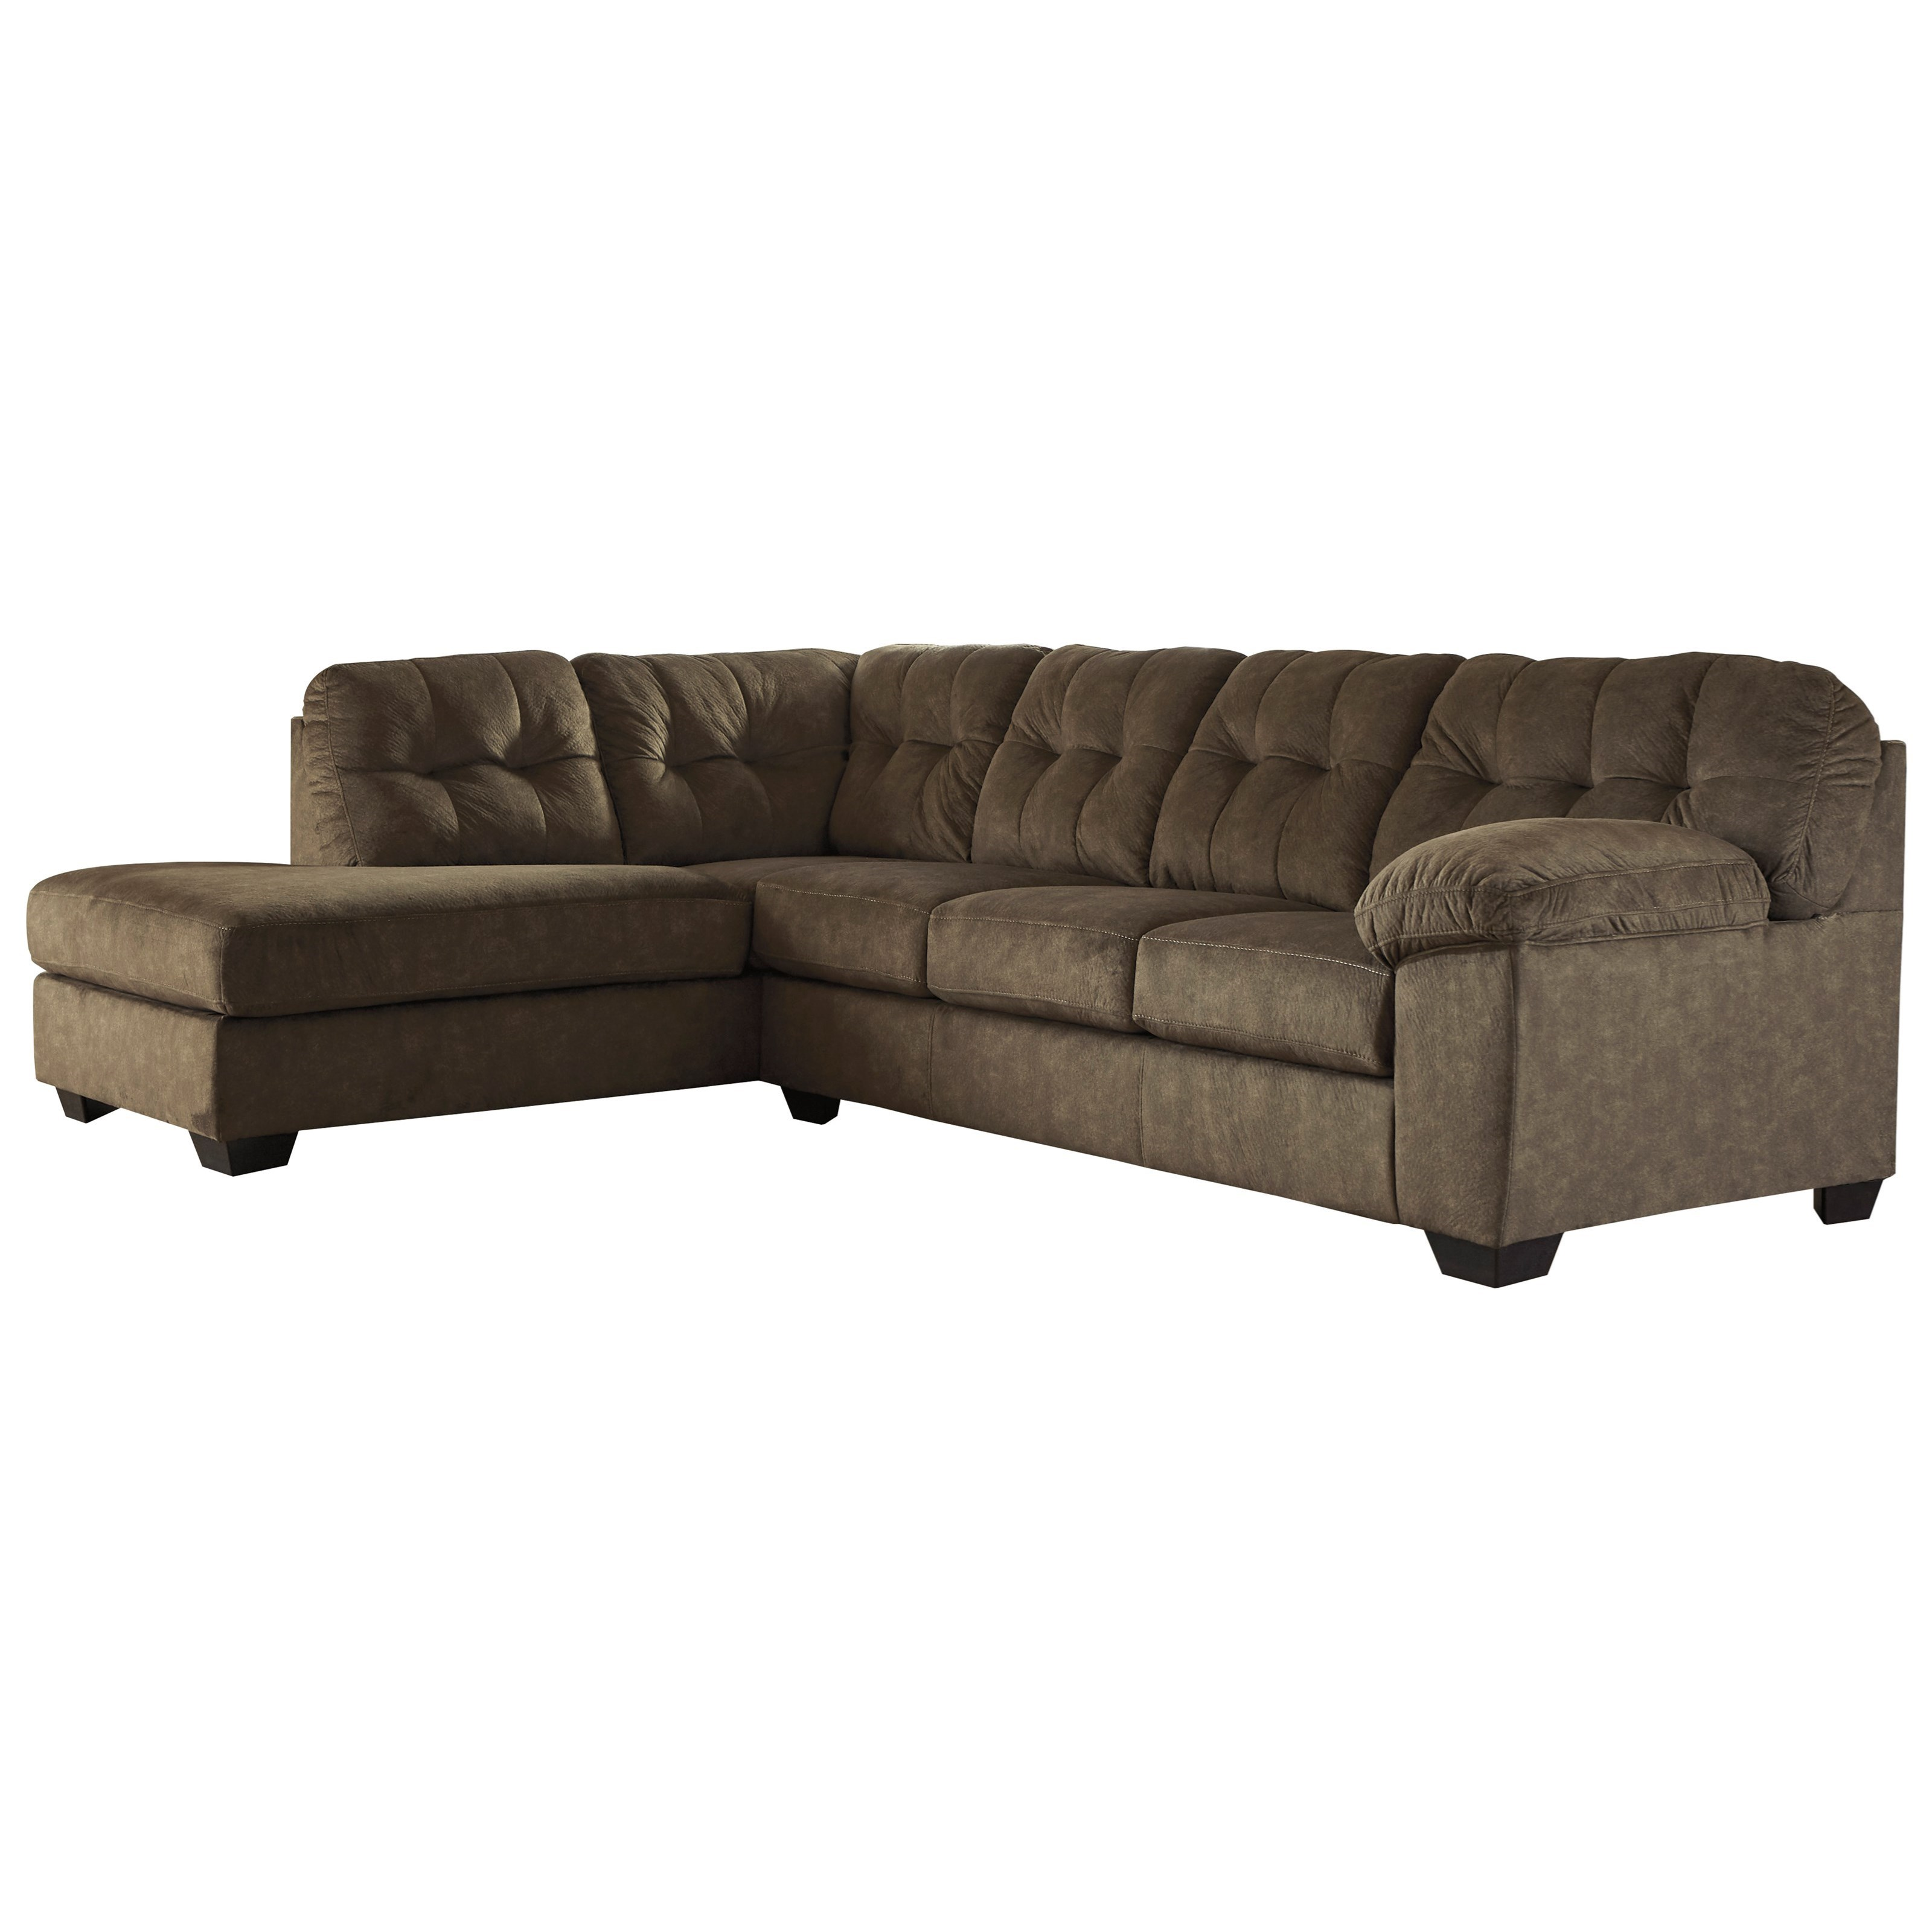 queen sofa chaise sleeper t vs box signature design by ashley accrington sectional with left